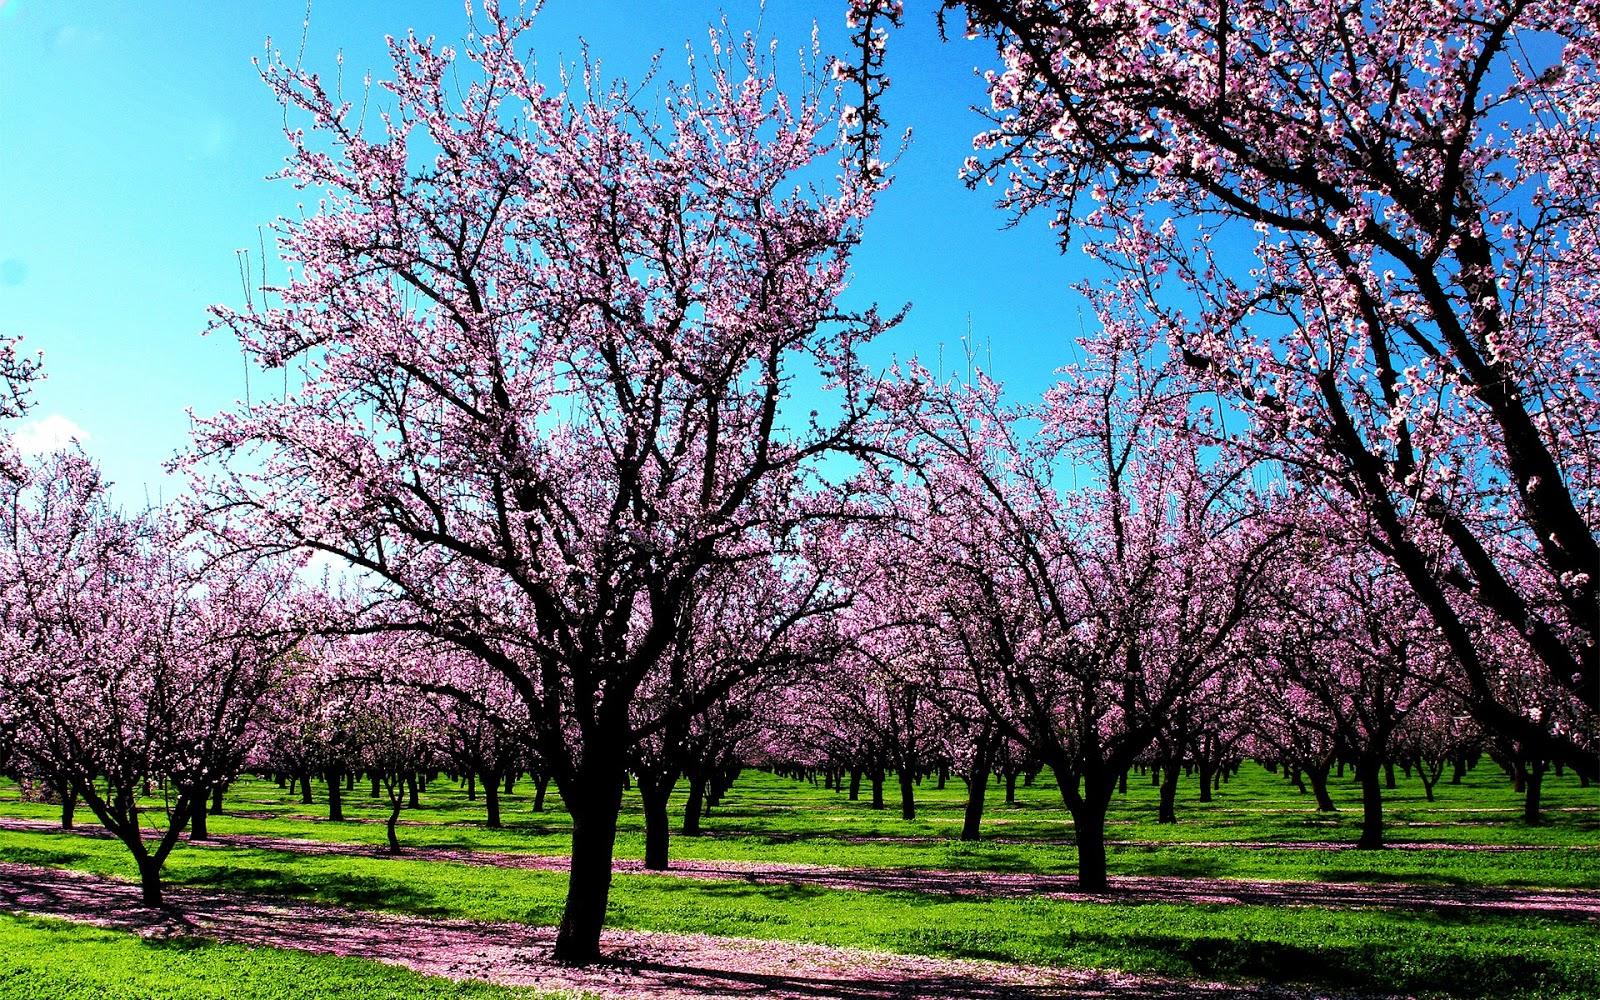 Spring HD Wallpapers Widescreen - Wallpapers